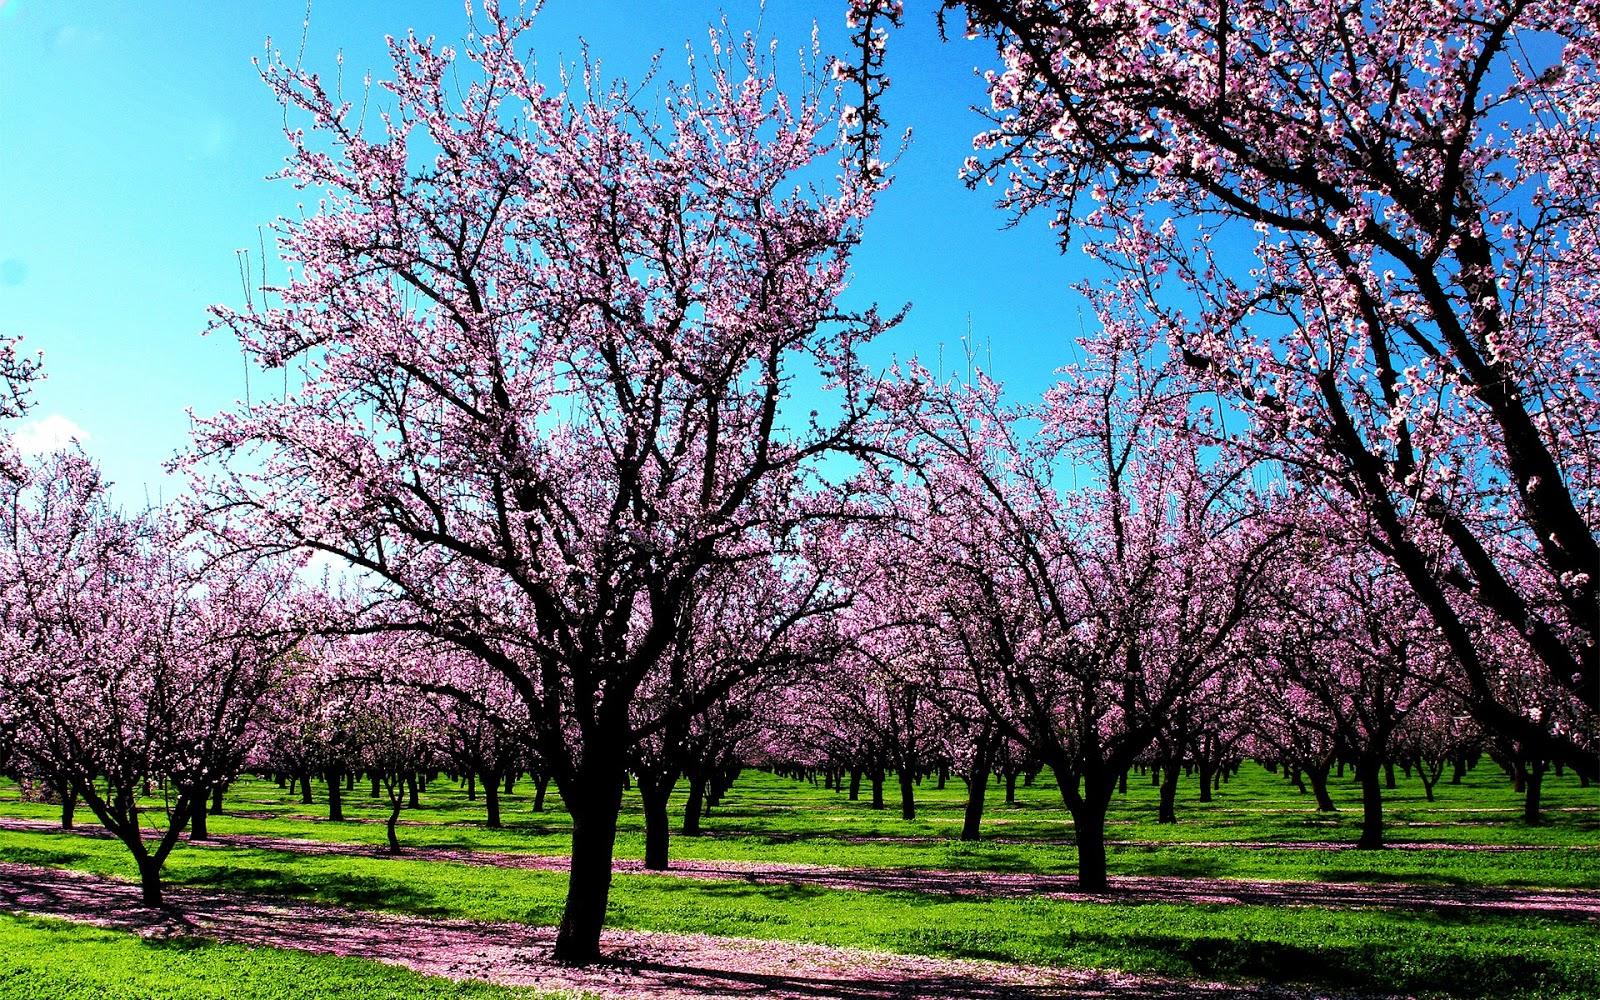 Spring HD Wallpapers Widescreen - Wallpapers